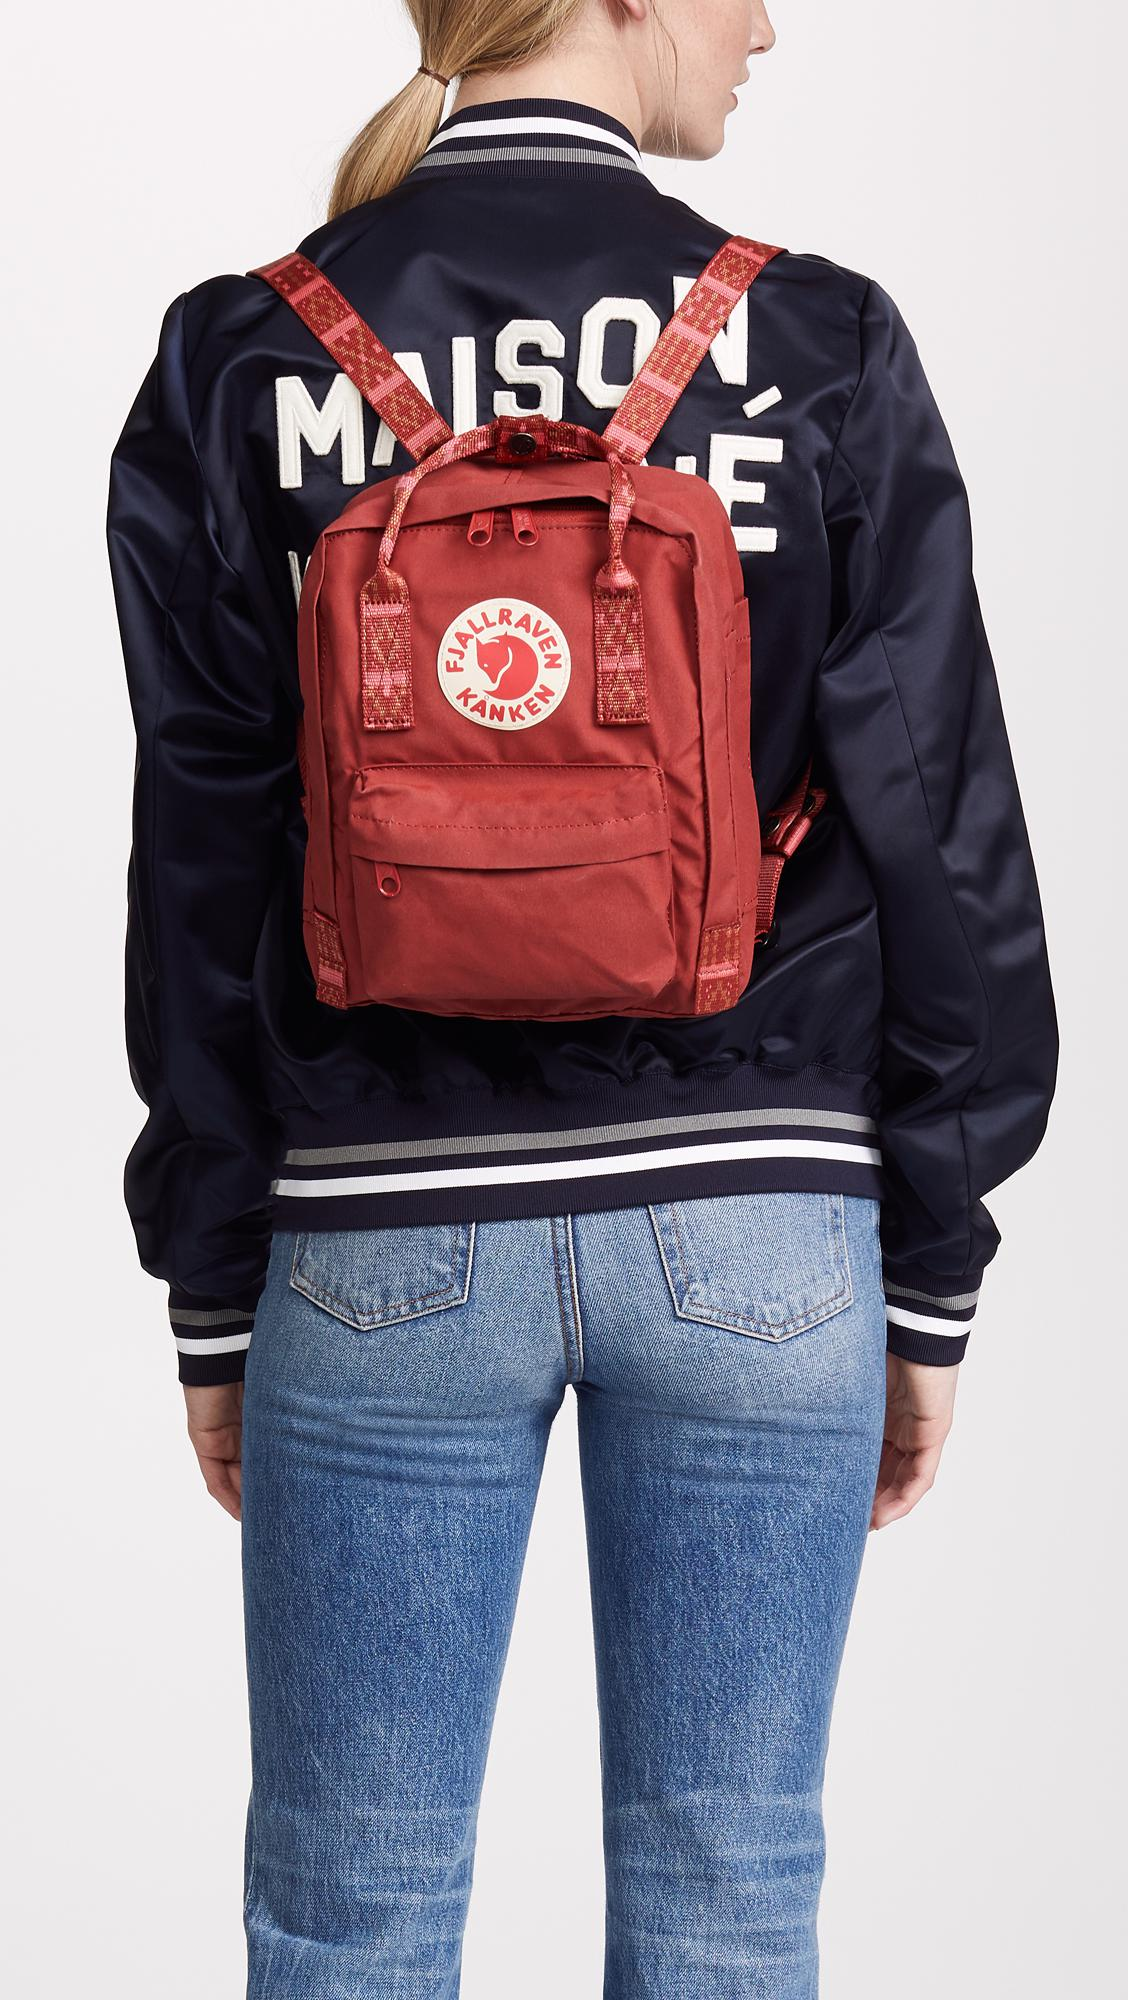 acf3e635b7 Fjallraven - Red Kanken Mini Backpack - Lyst. View fullscreen